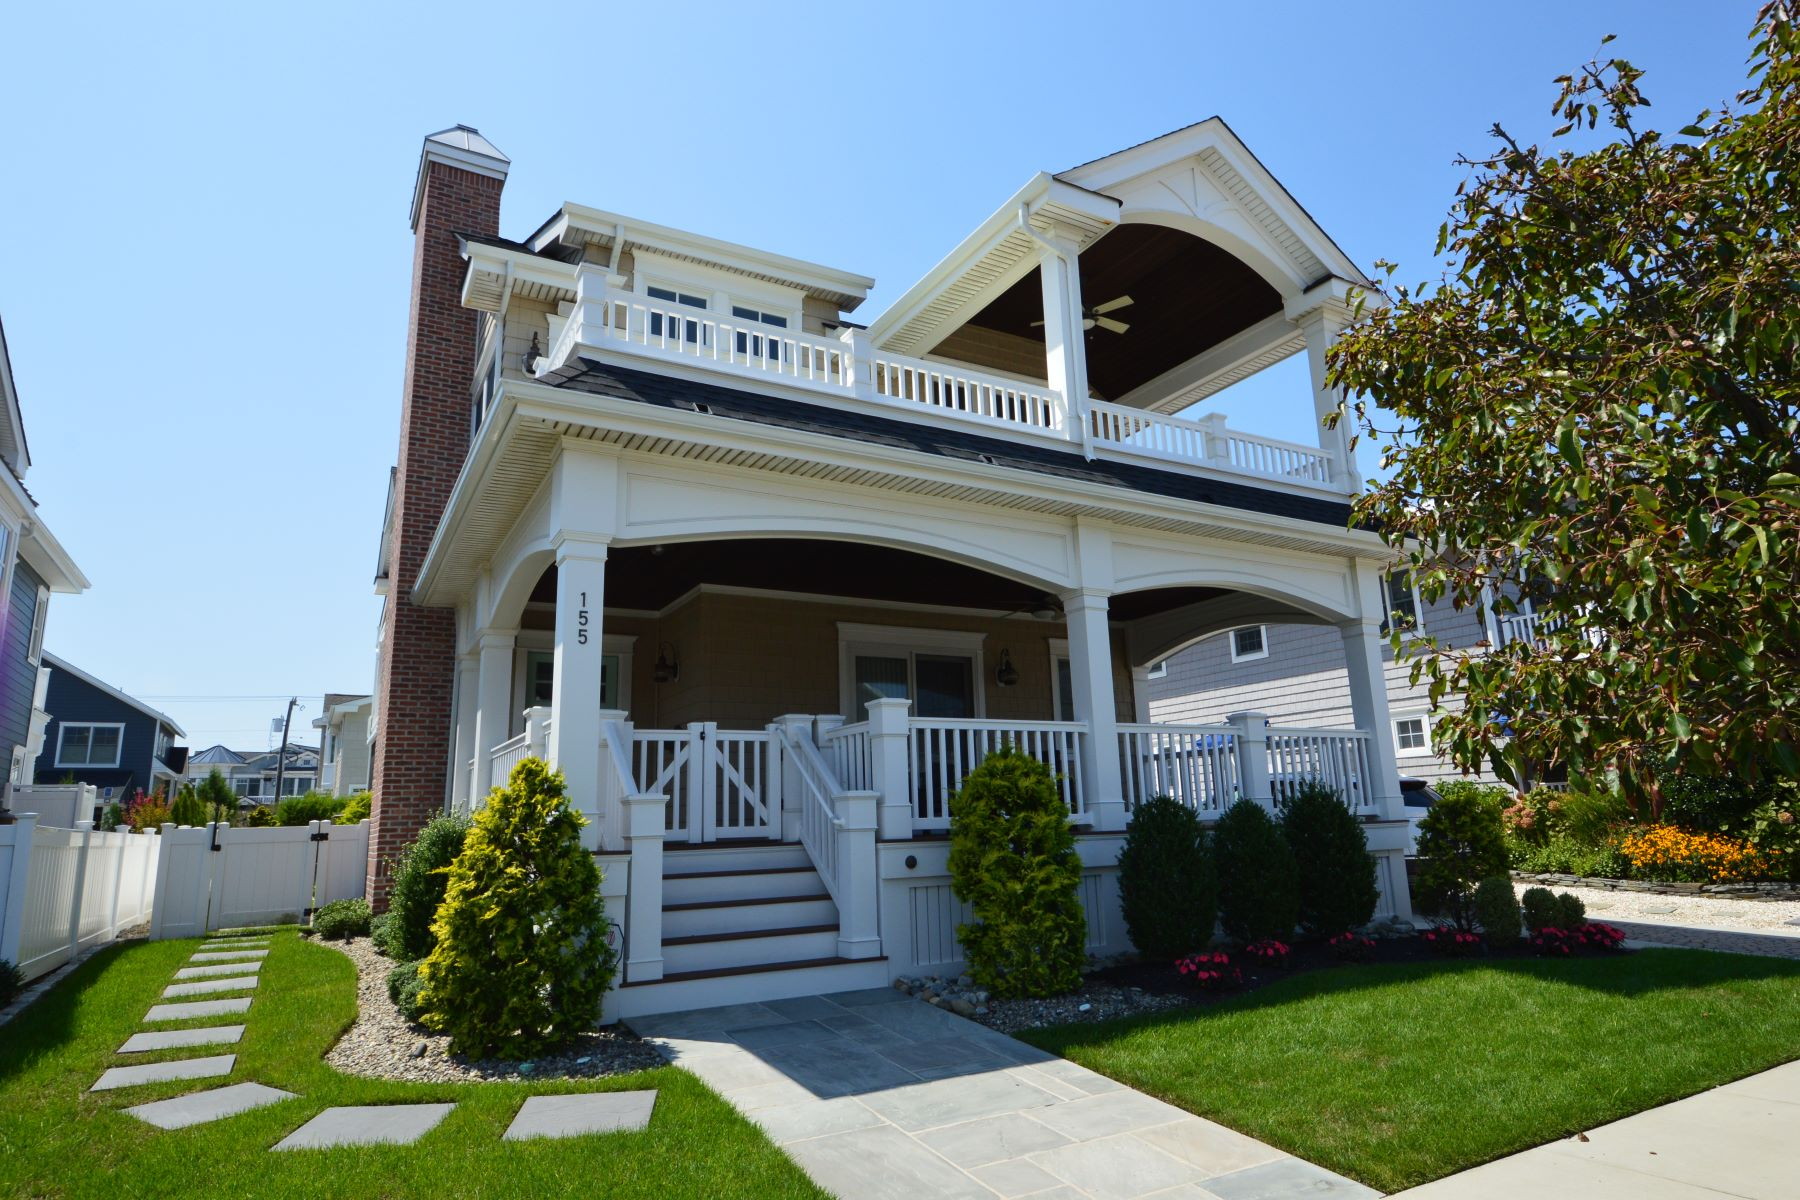 Single Family Homes for Sale at Spectacular Beach Residence 155 98th Street Stone Harbor, New Jersey 08247 United States